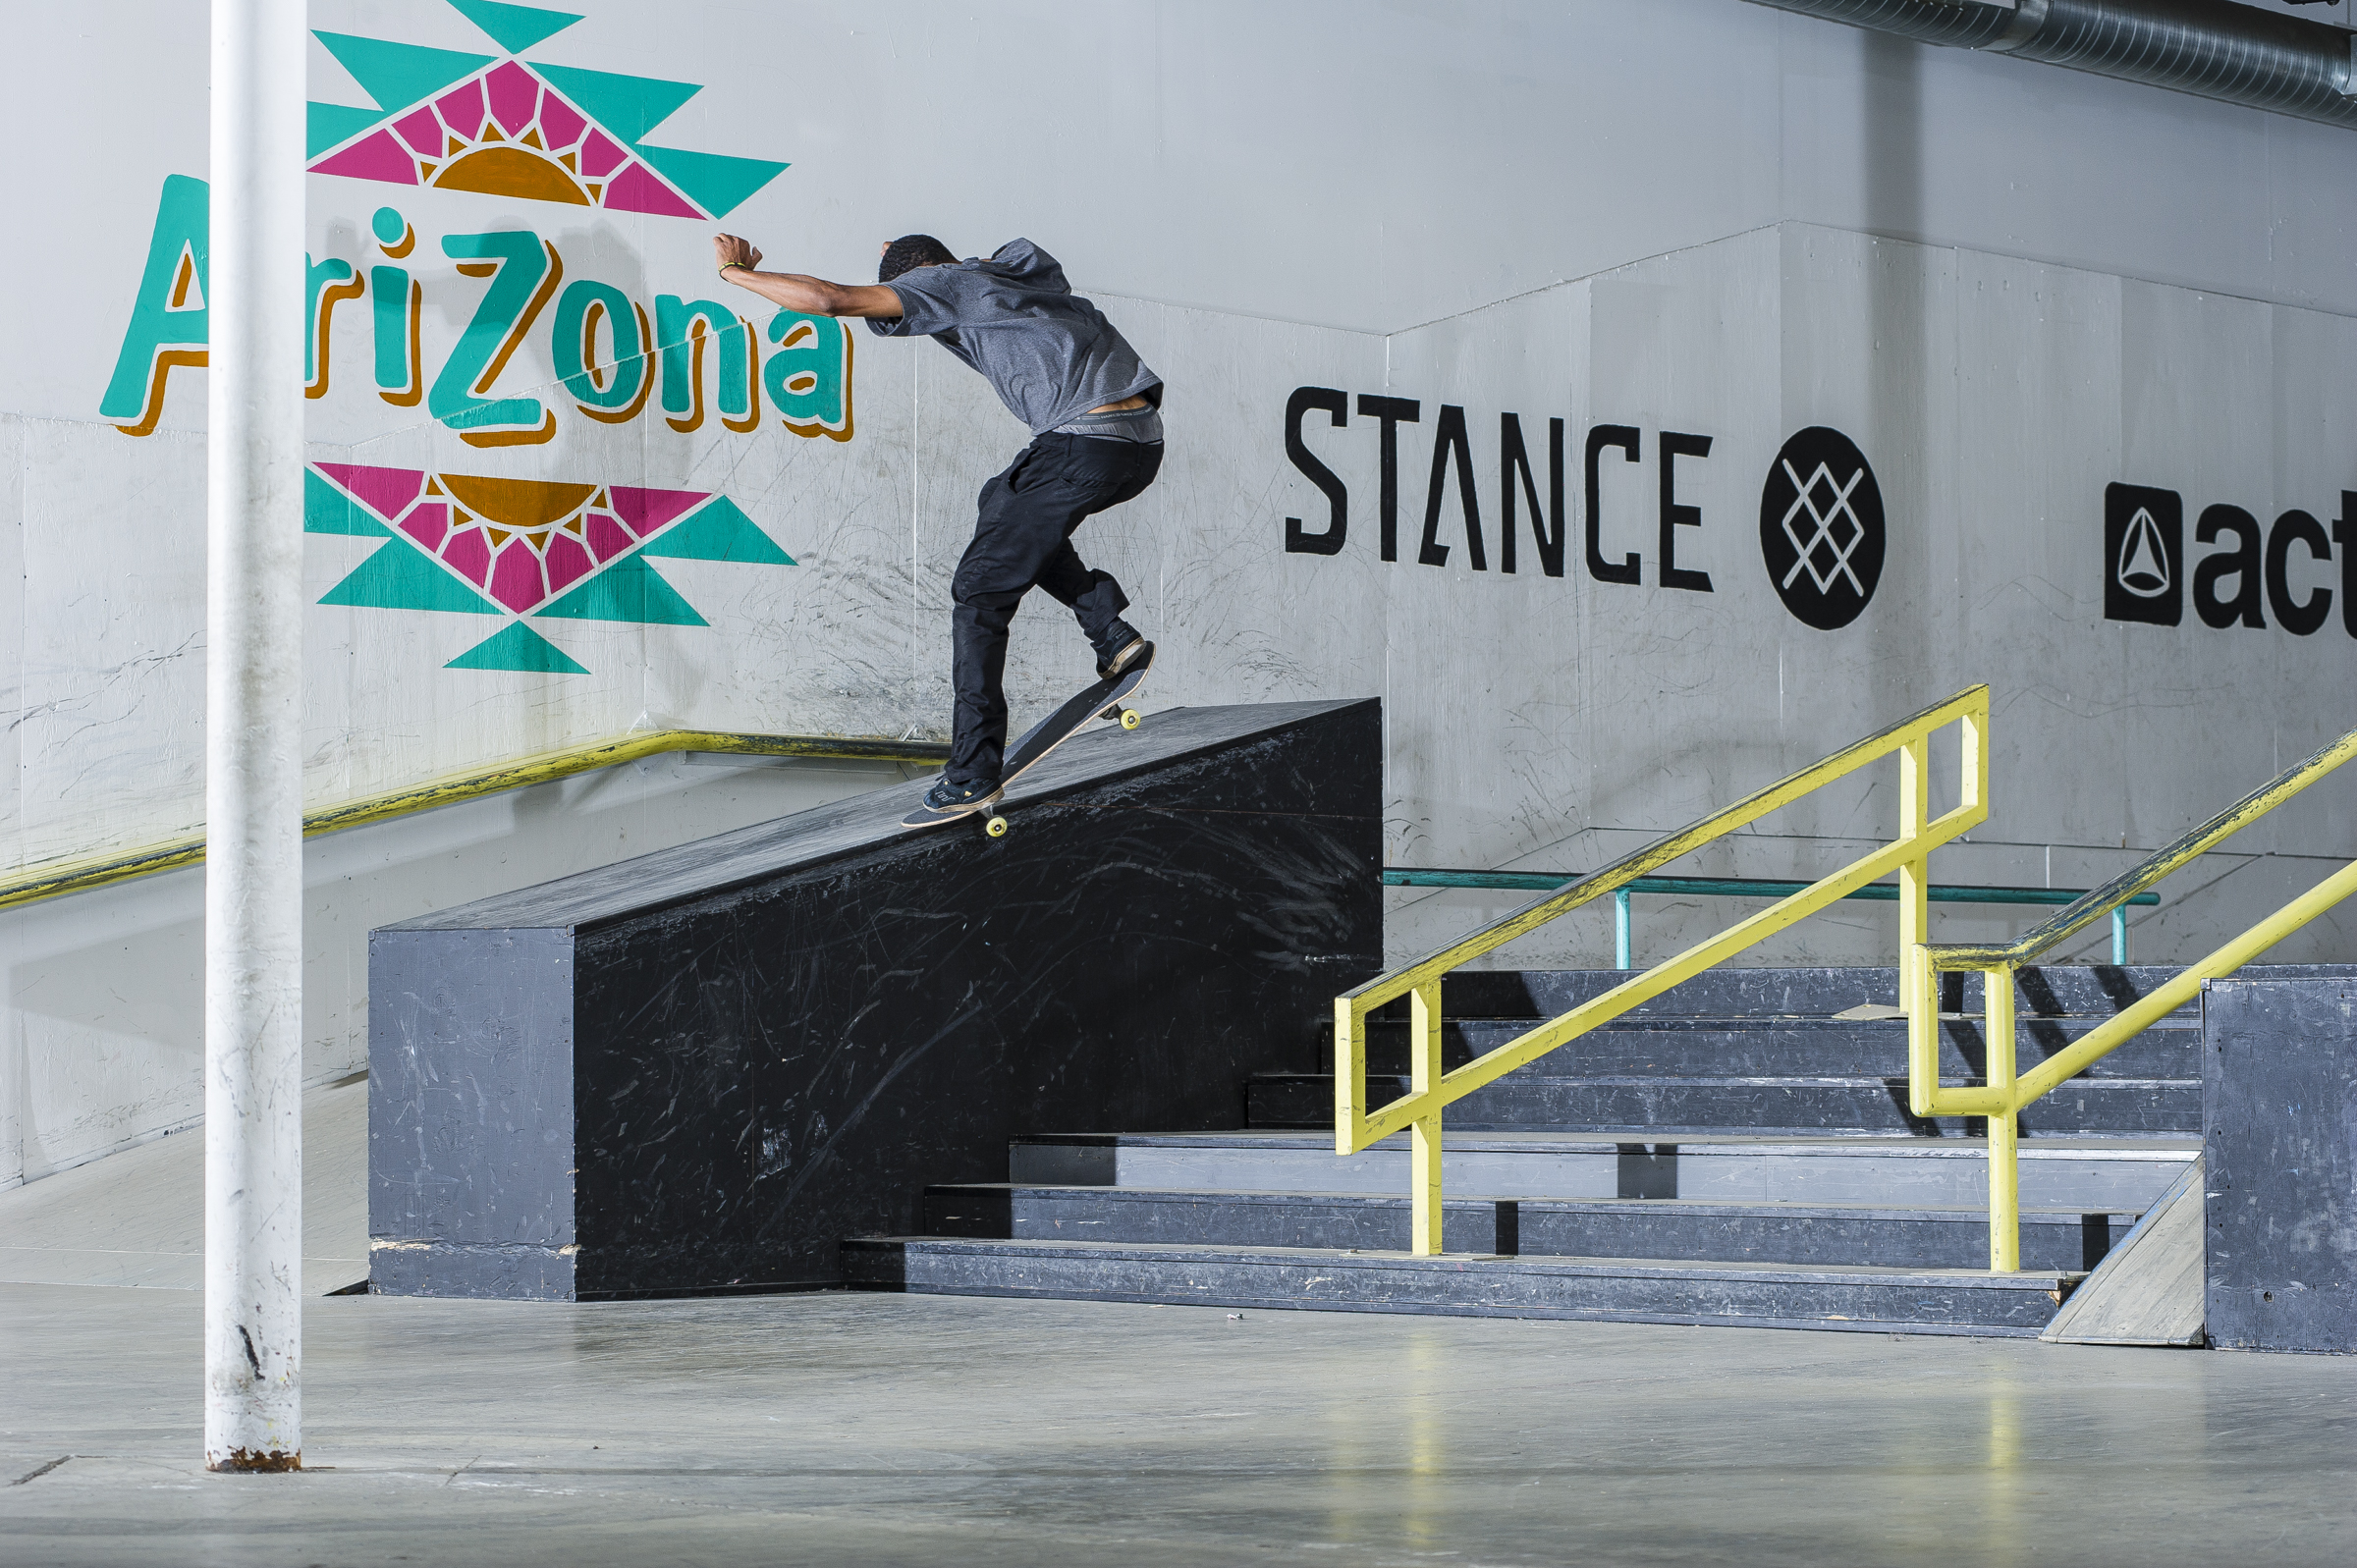 Robert Milas - frontside crooked grind